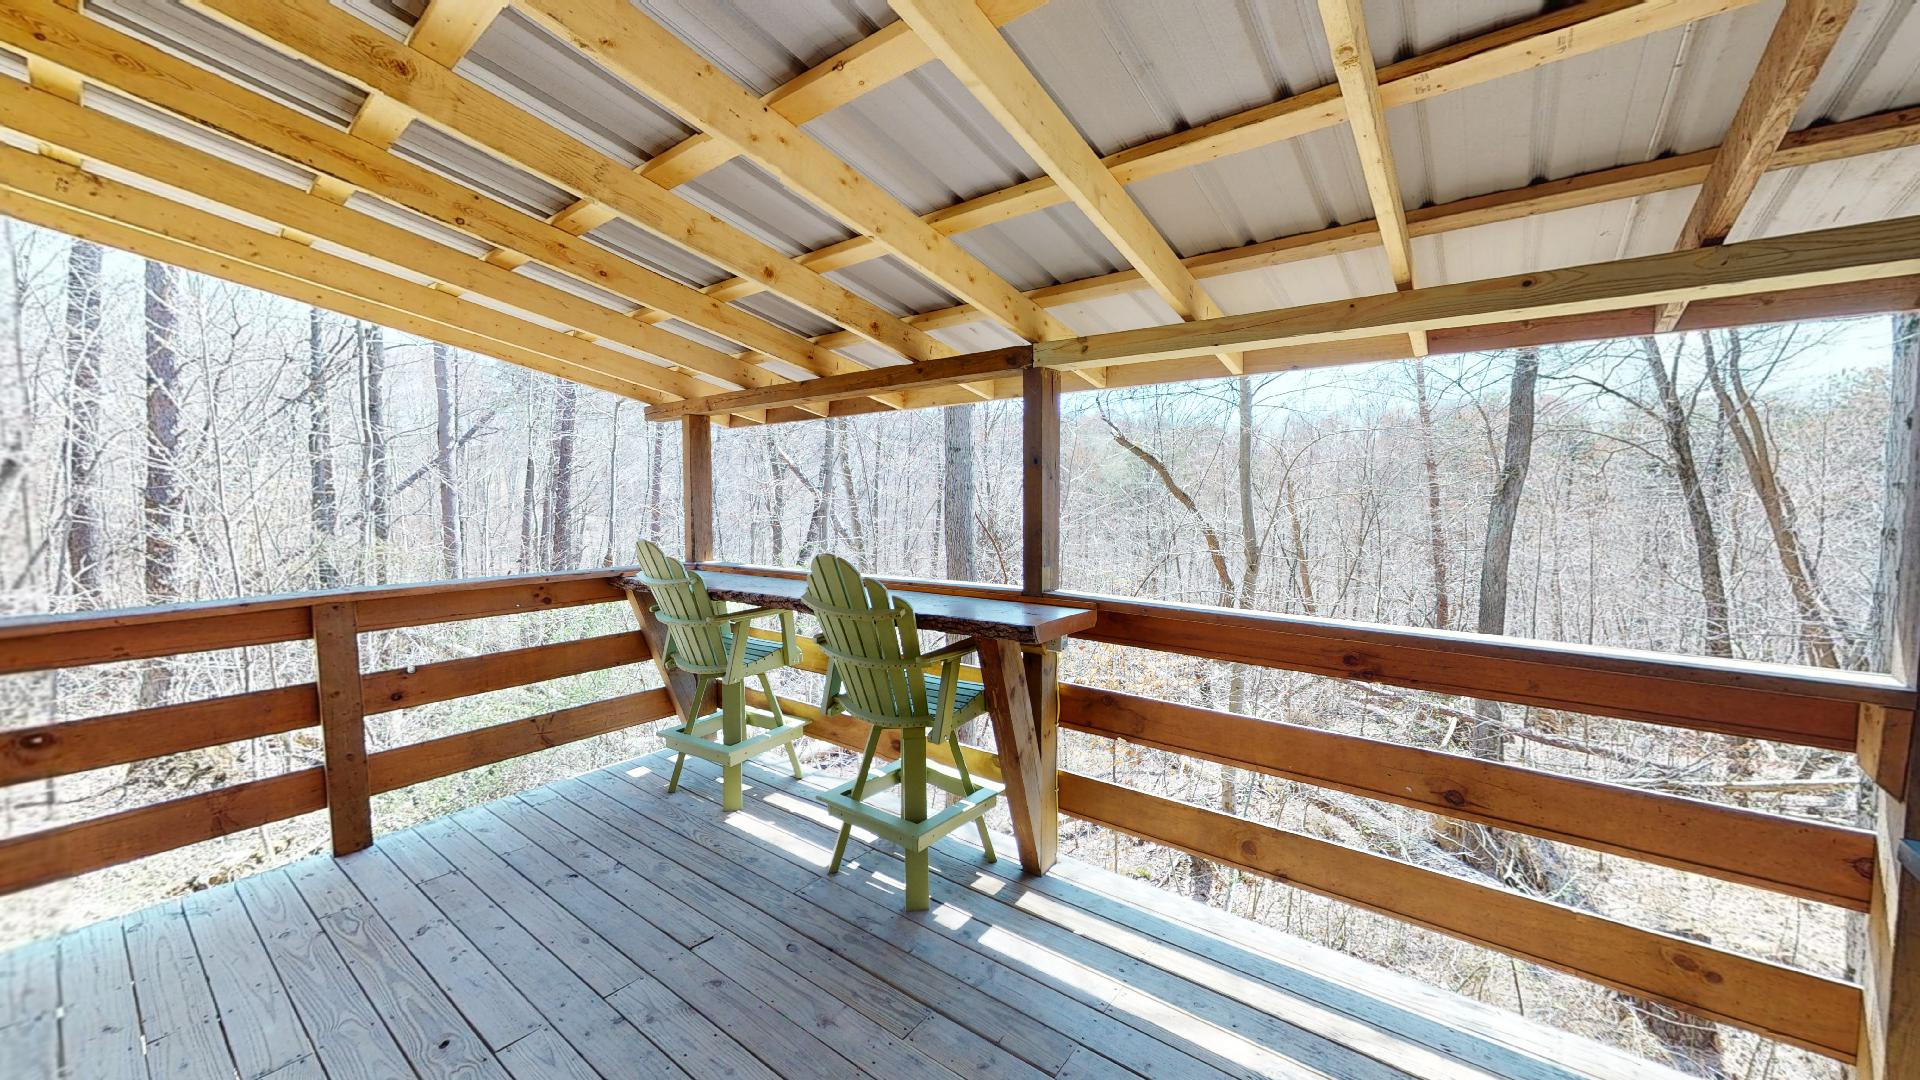 Yesteryear Back Deck - Enjoy views of nature from the private back porch.